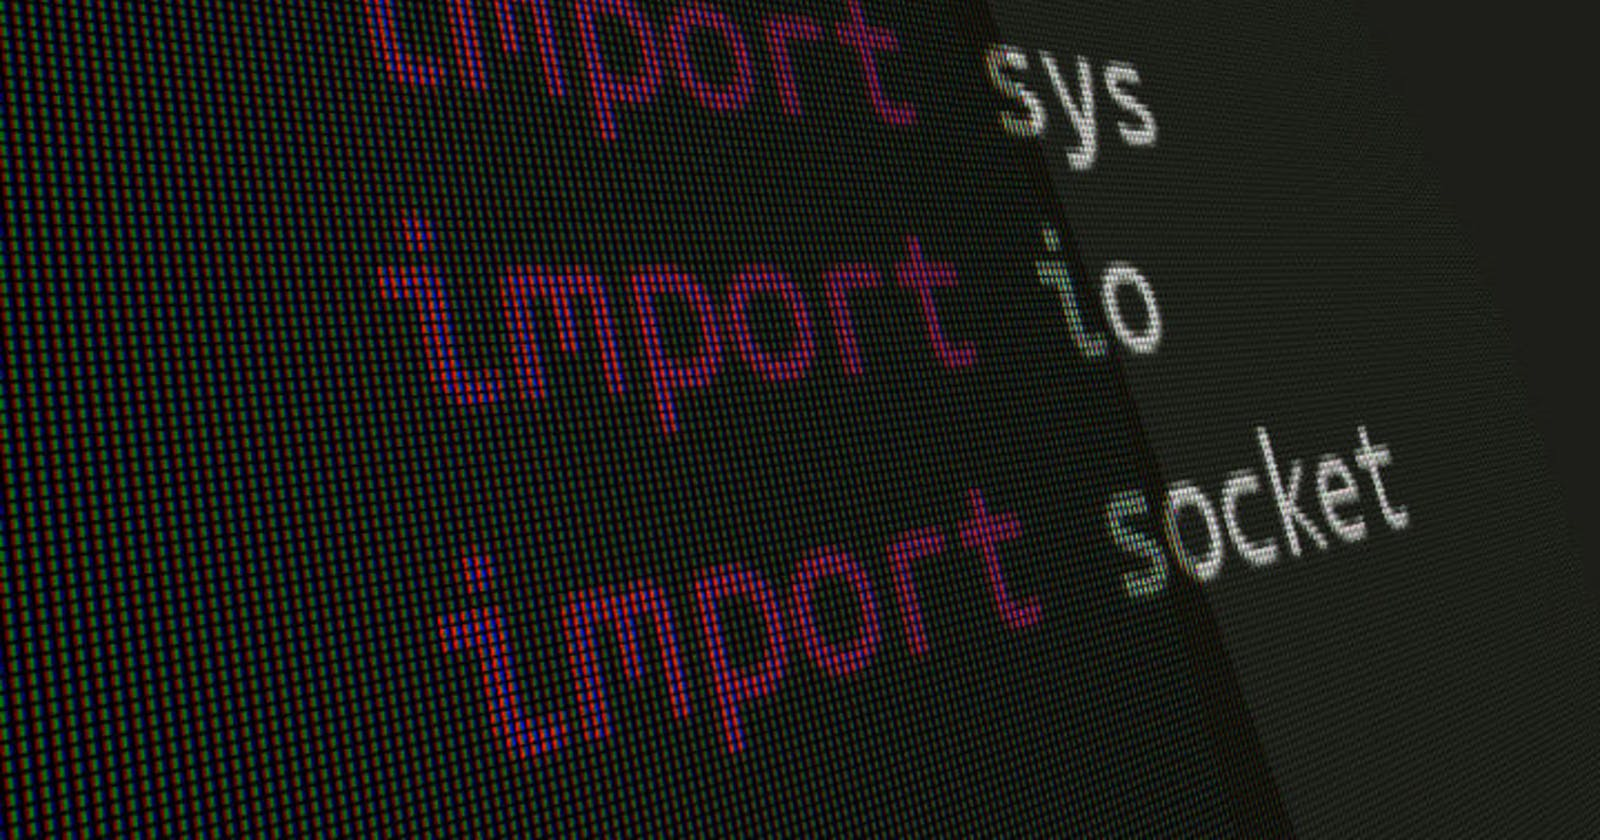 Dynamic importing stuff in Python